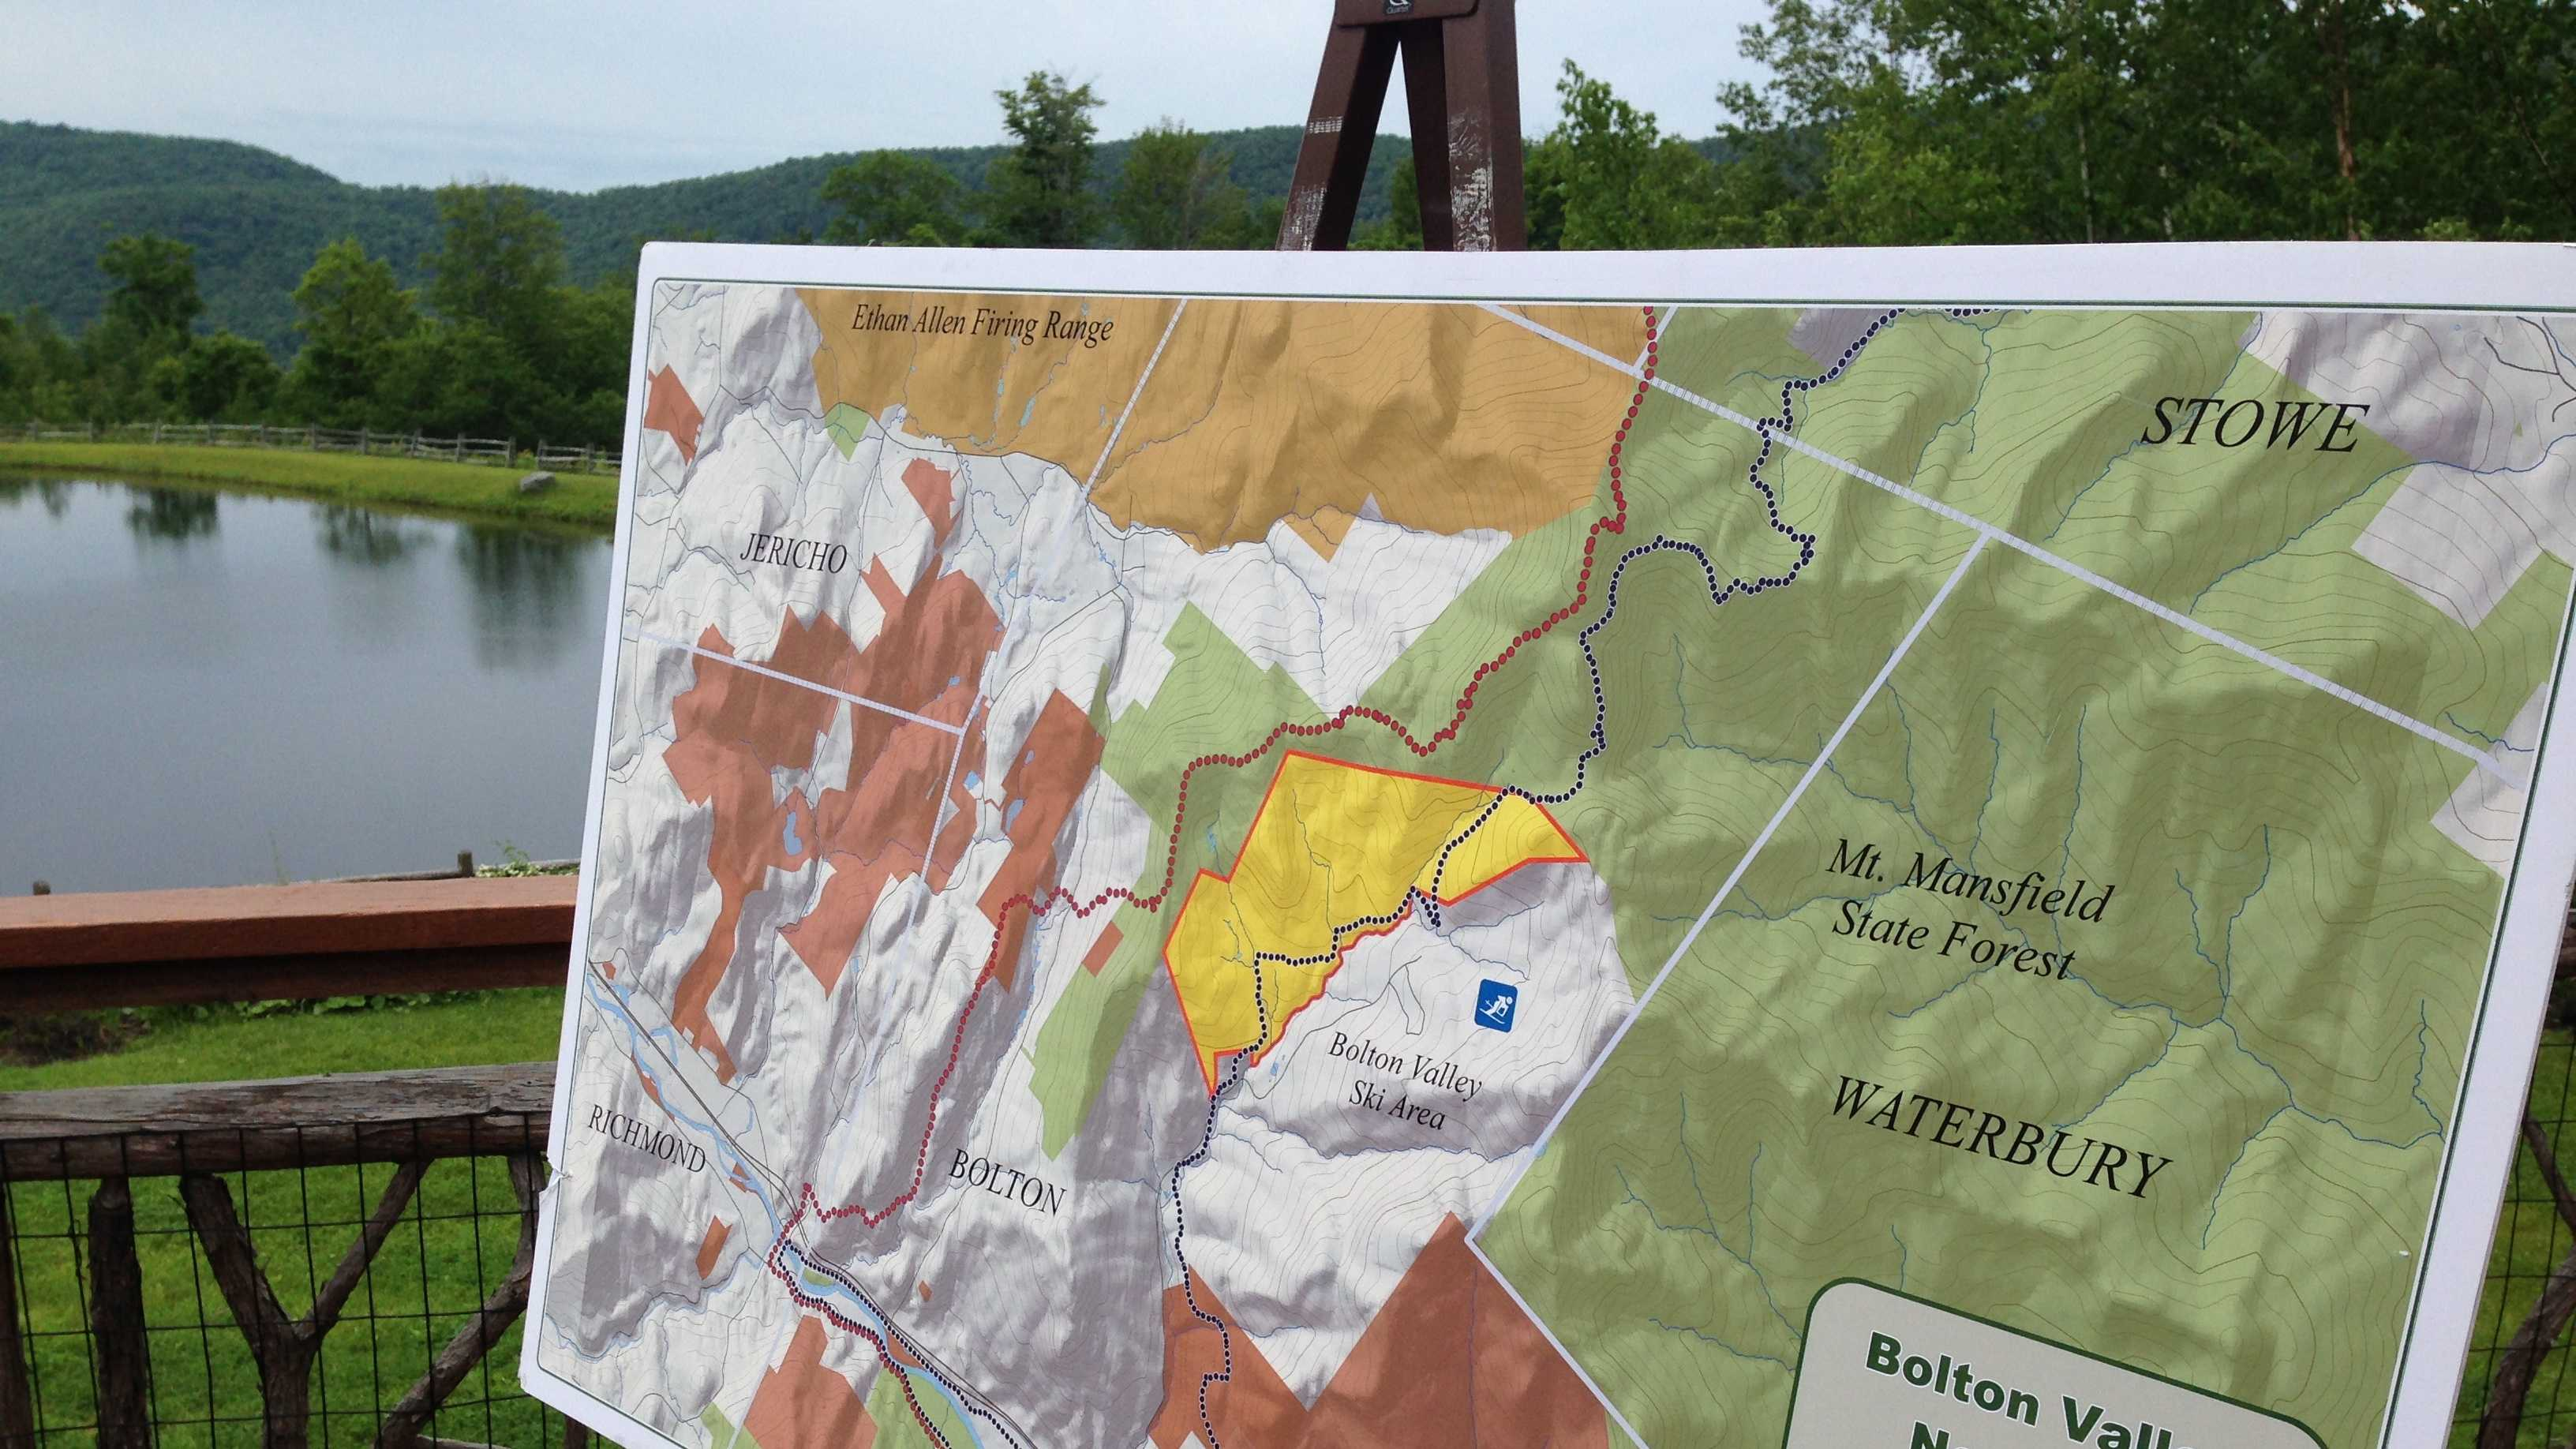 The state assumed ownership Thursday of an 1,144 acre parcel in Bolton shaded in yellow.